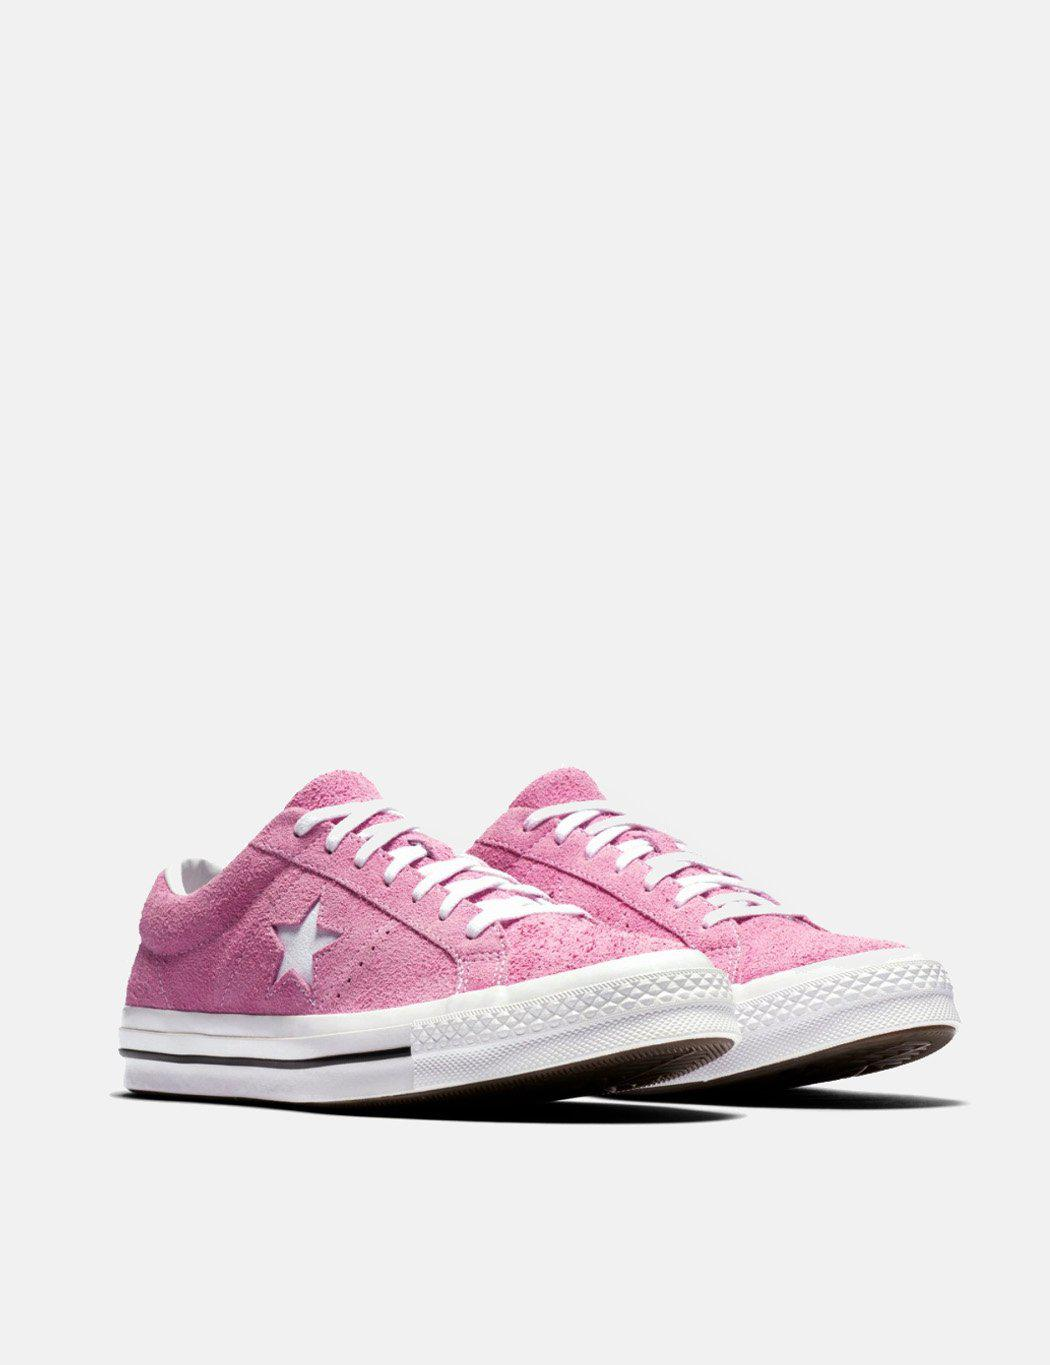 25a977348085 ... reduced lyst converse one star ox low suede 159492c in pink for men  69353 1cb1f